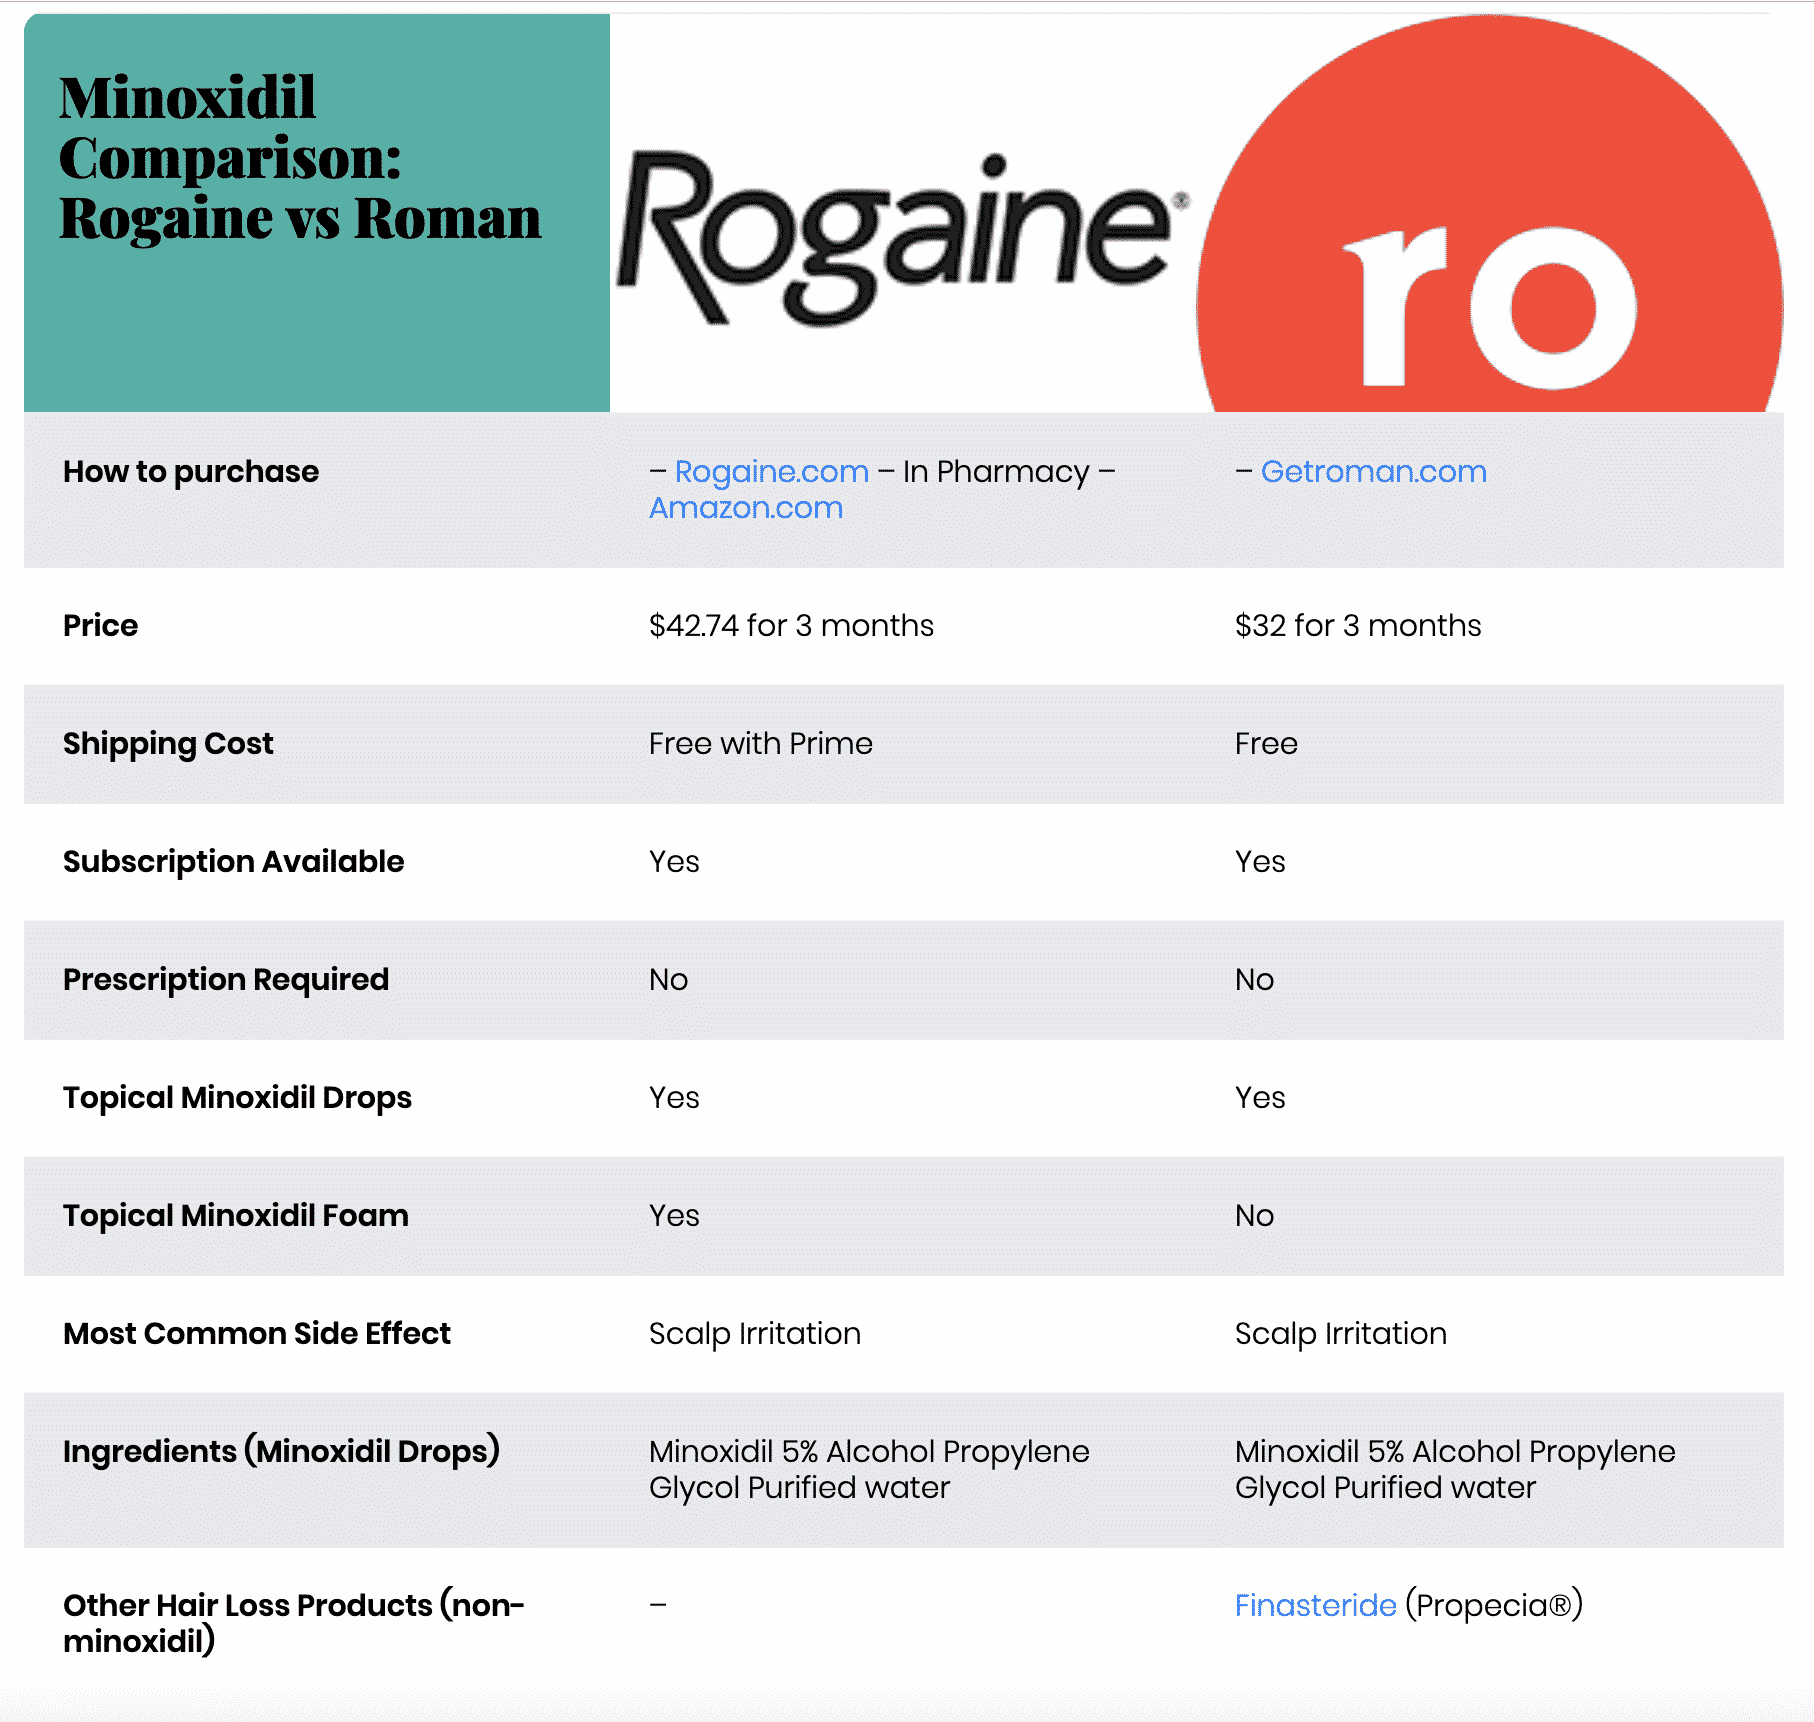 Rogaine vs Roman Comparison Chart